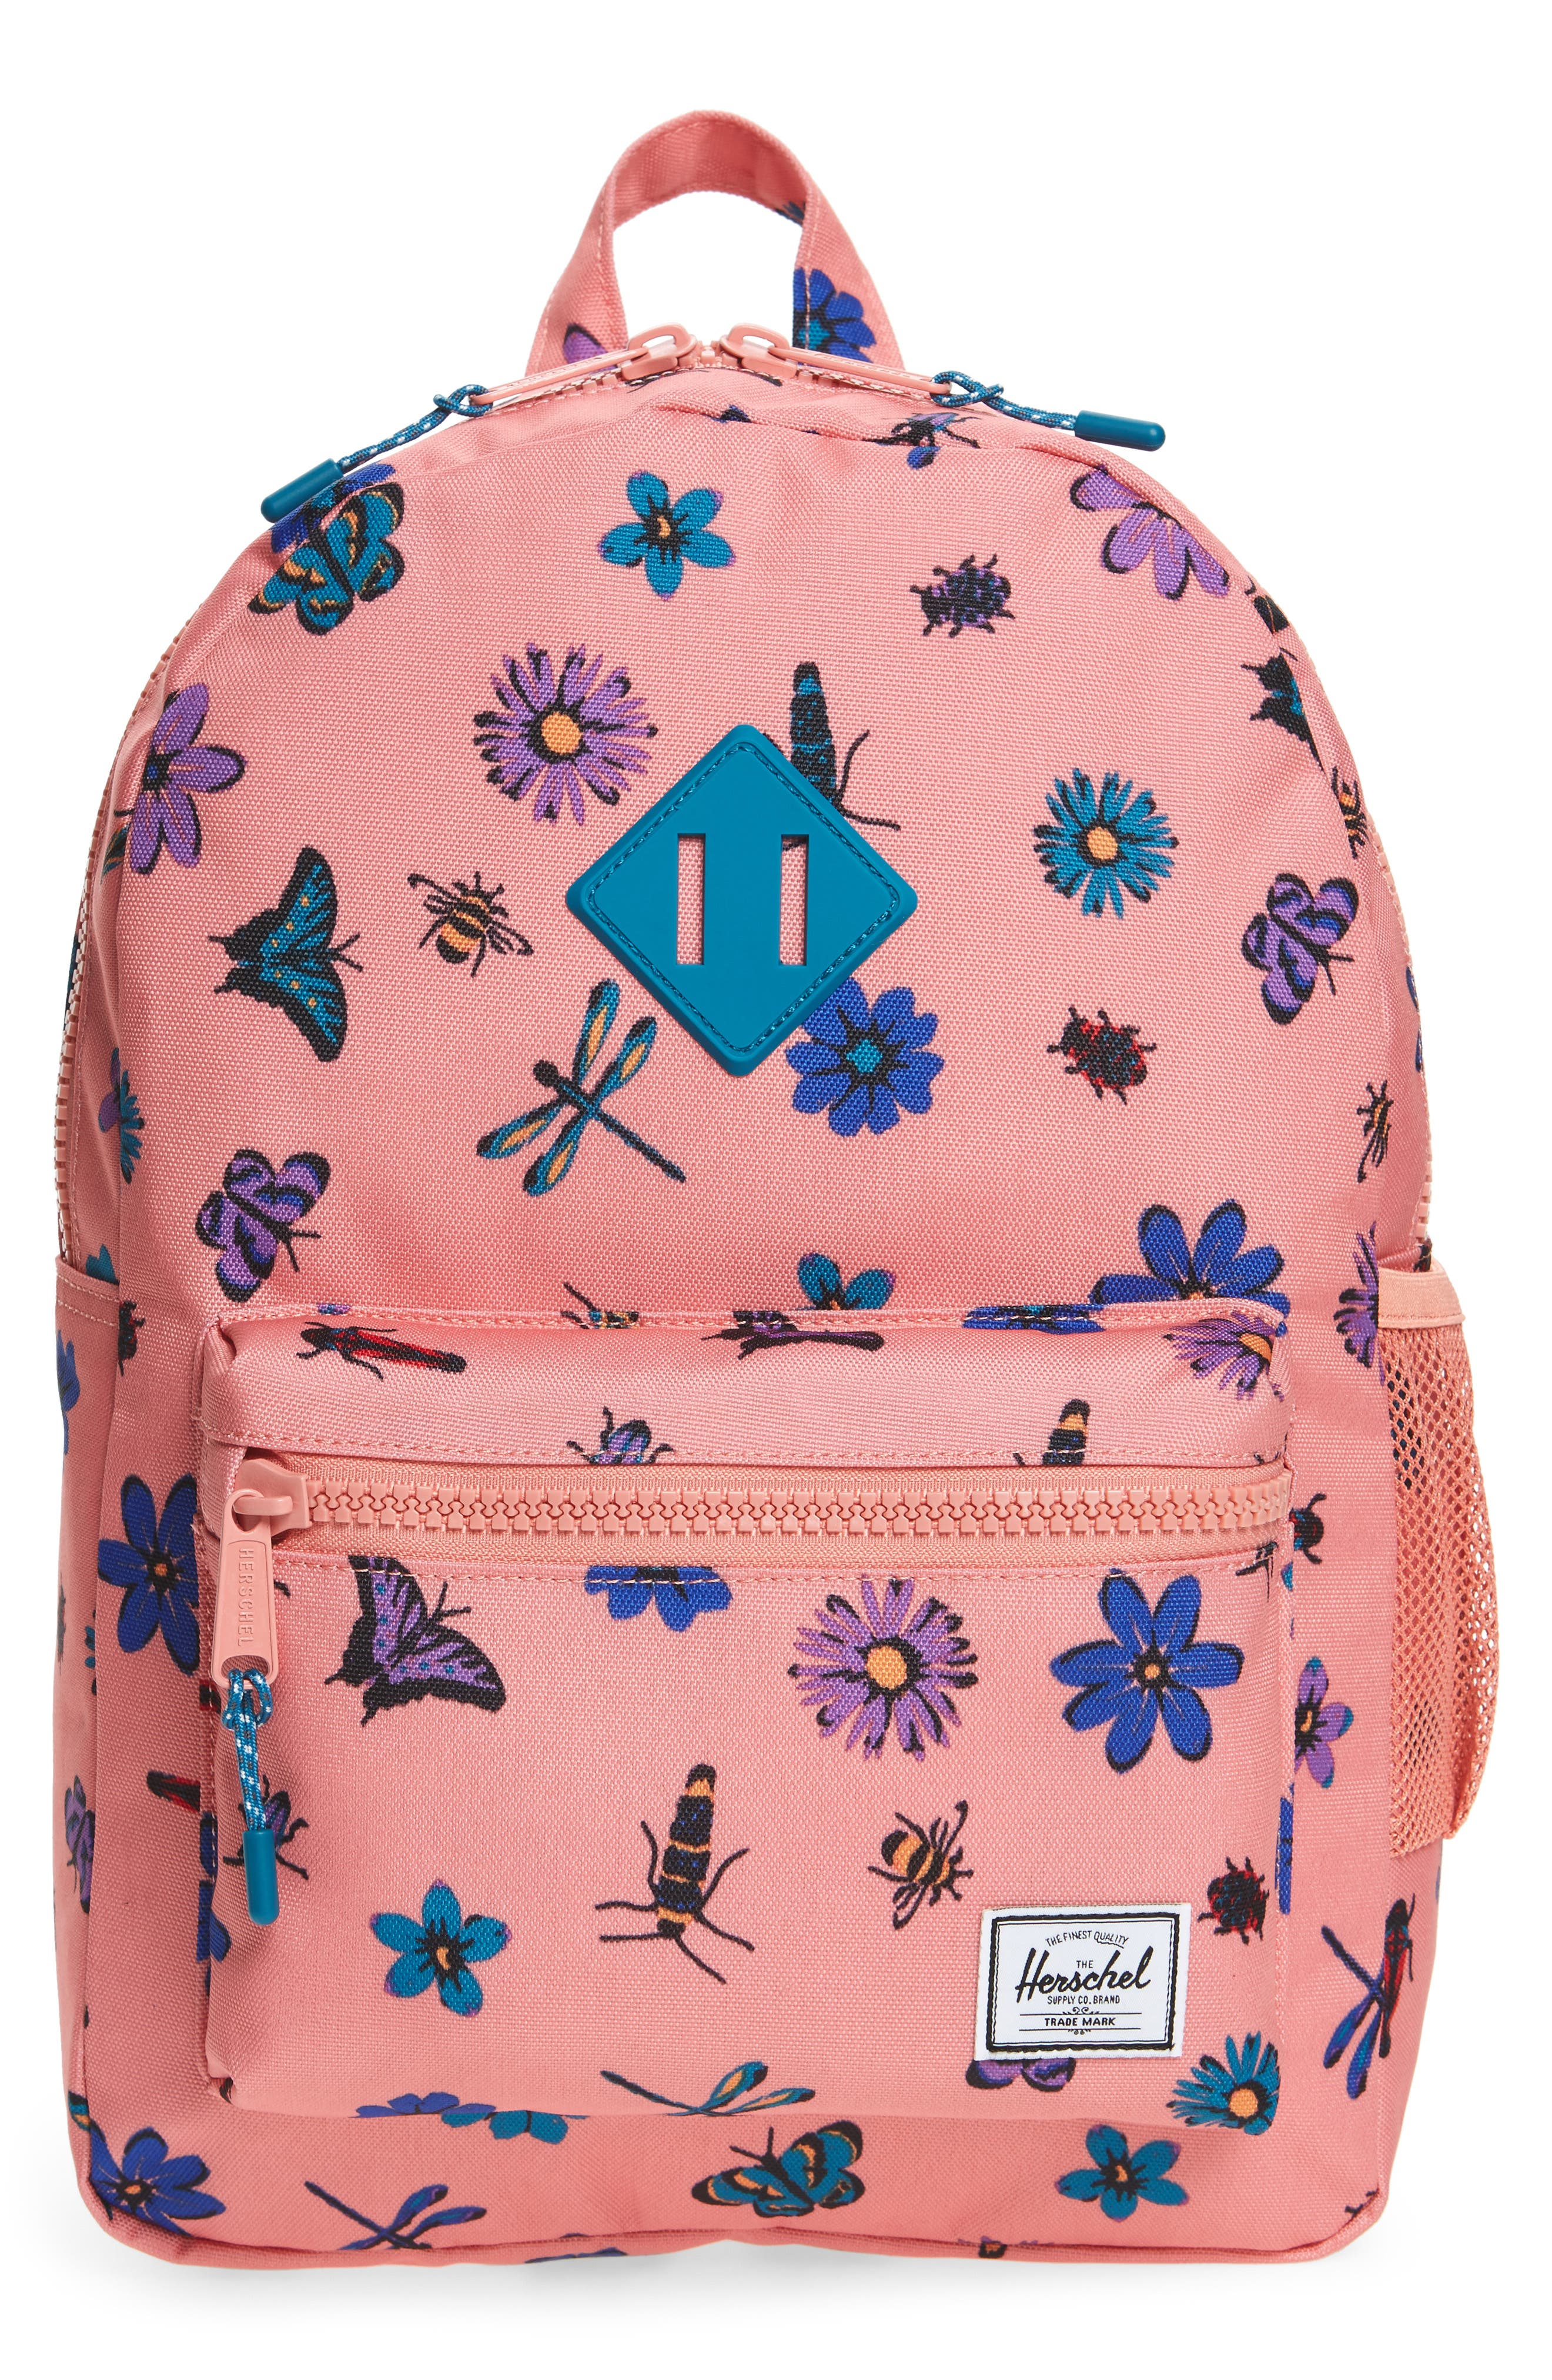 Heritage Backpack,                             Main thumbnail 1, color,                             688